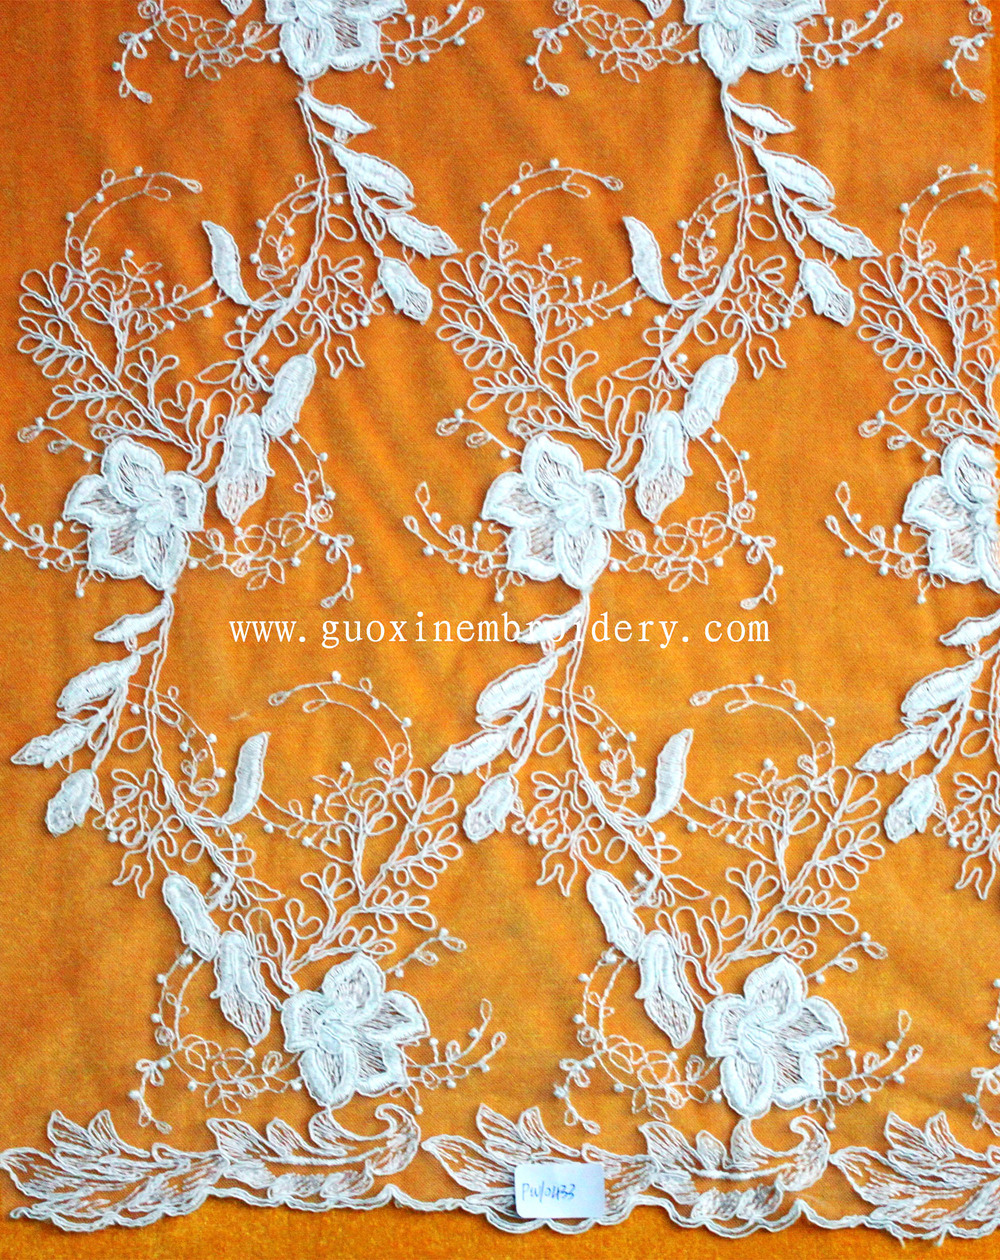 factory direct sale wedding lace fabric, embroidery lace designs